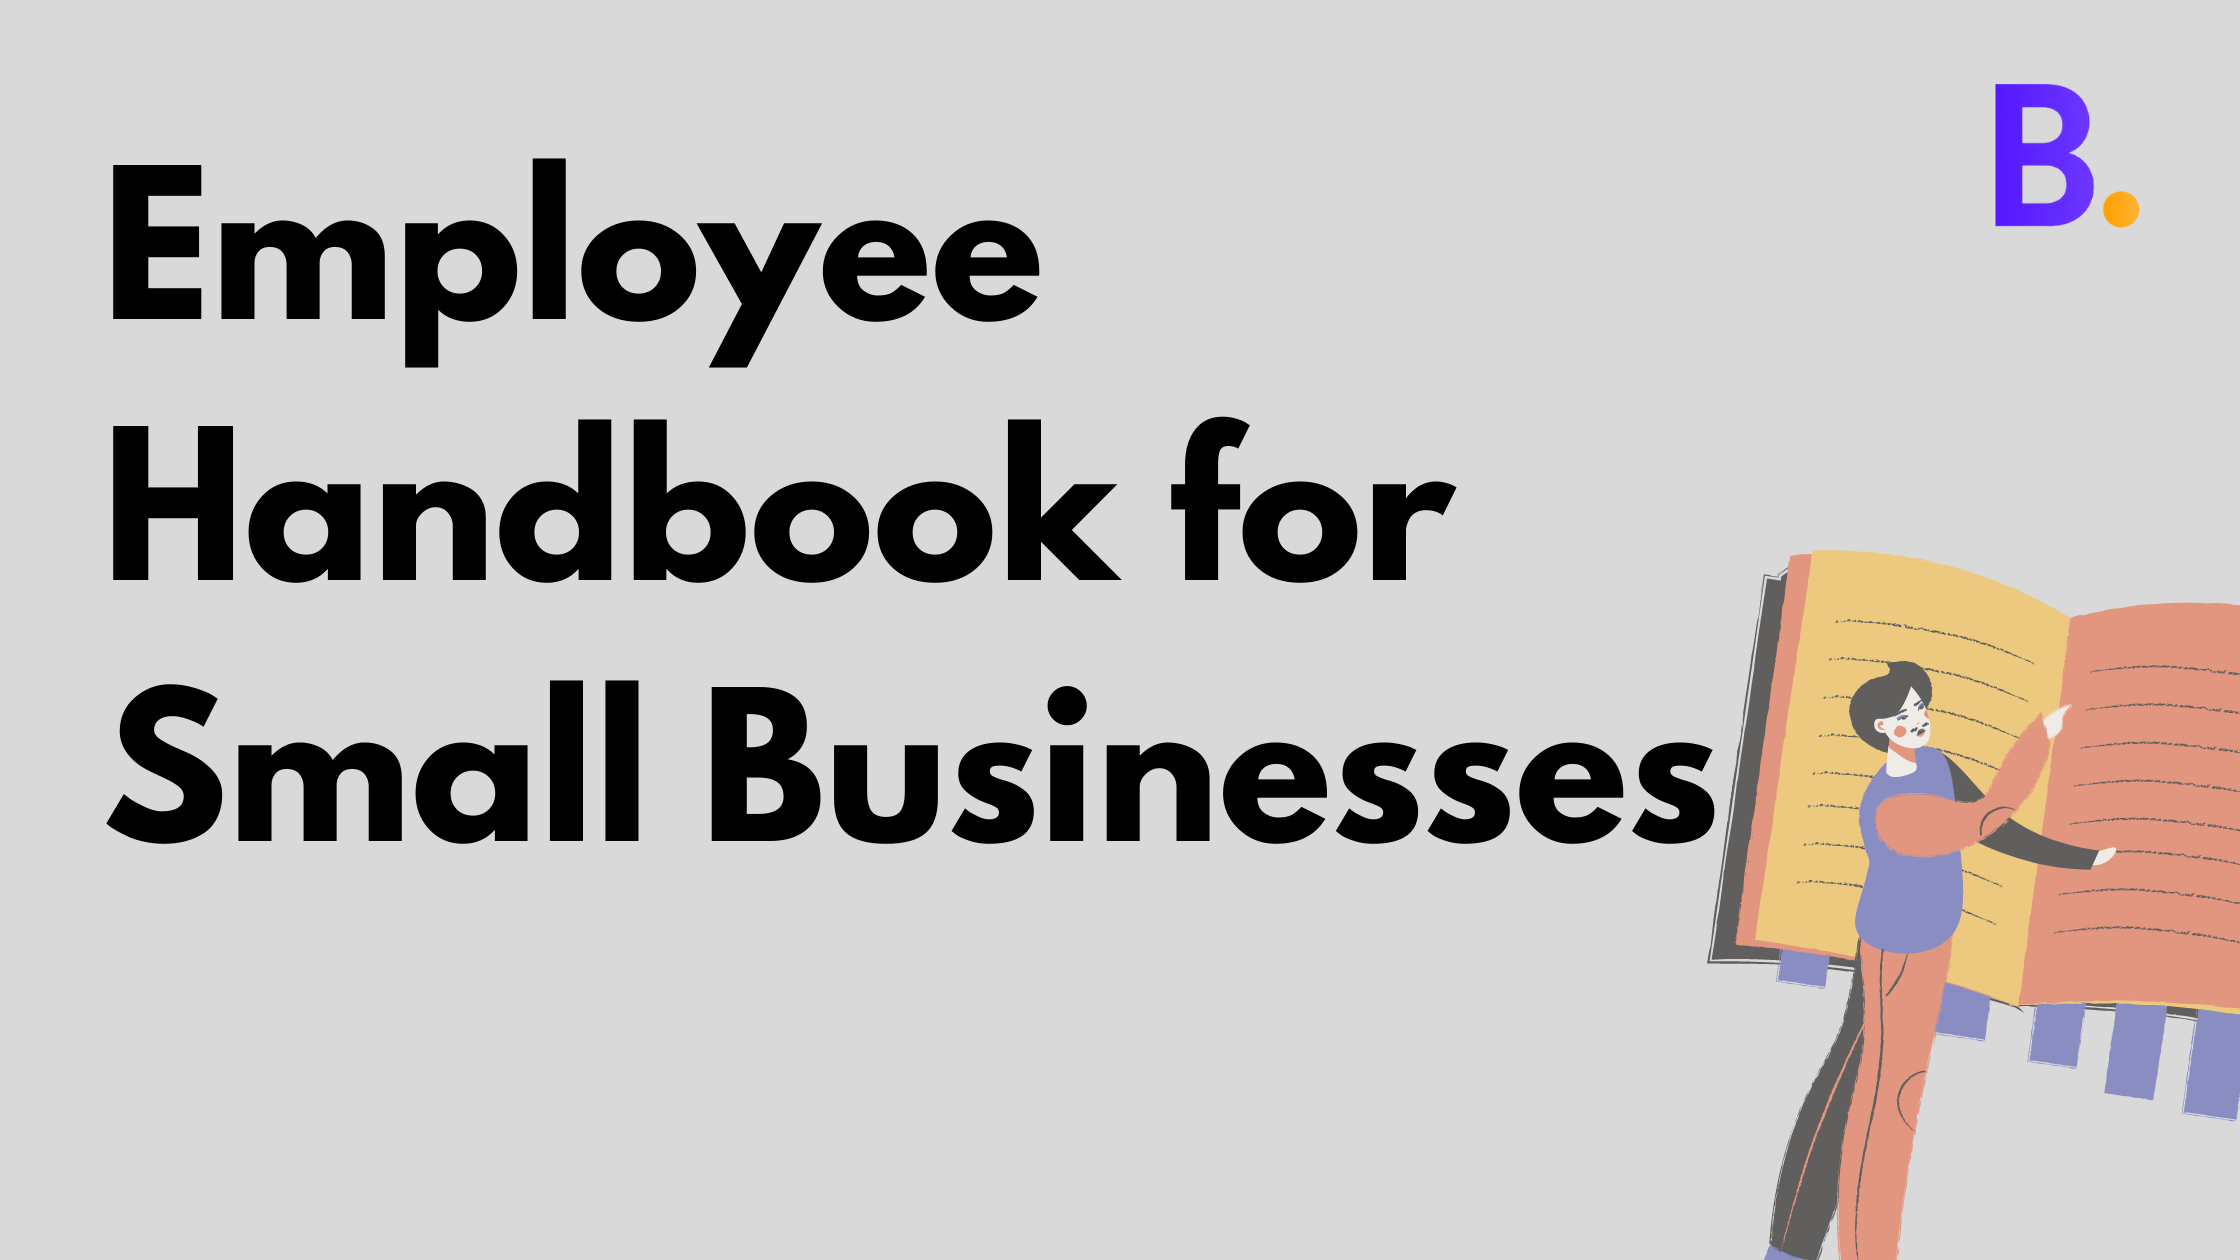 Employee Handbook for Small Businesses